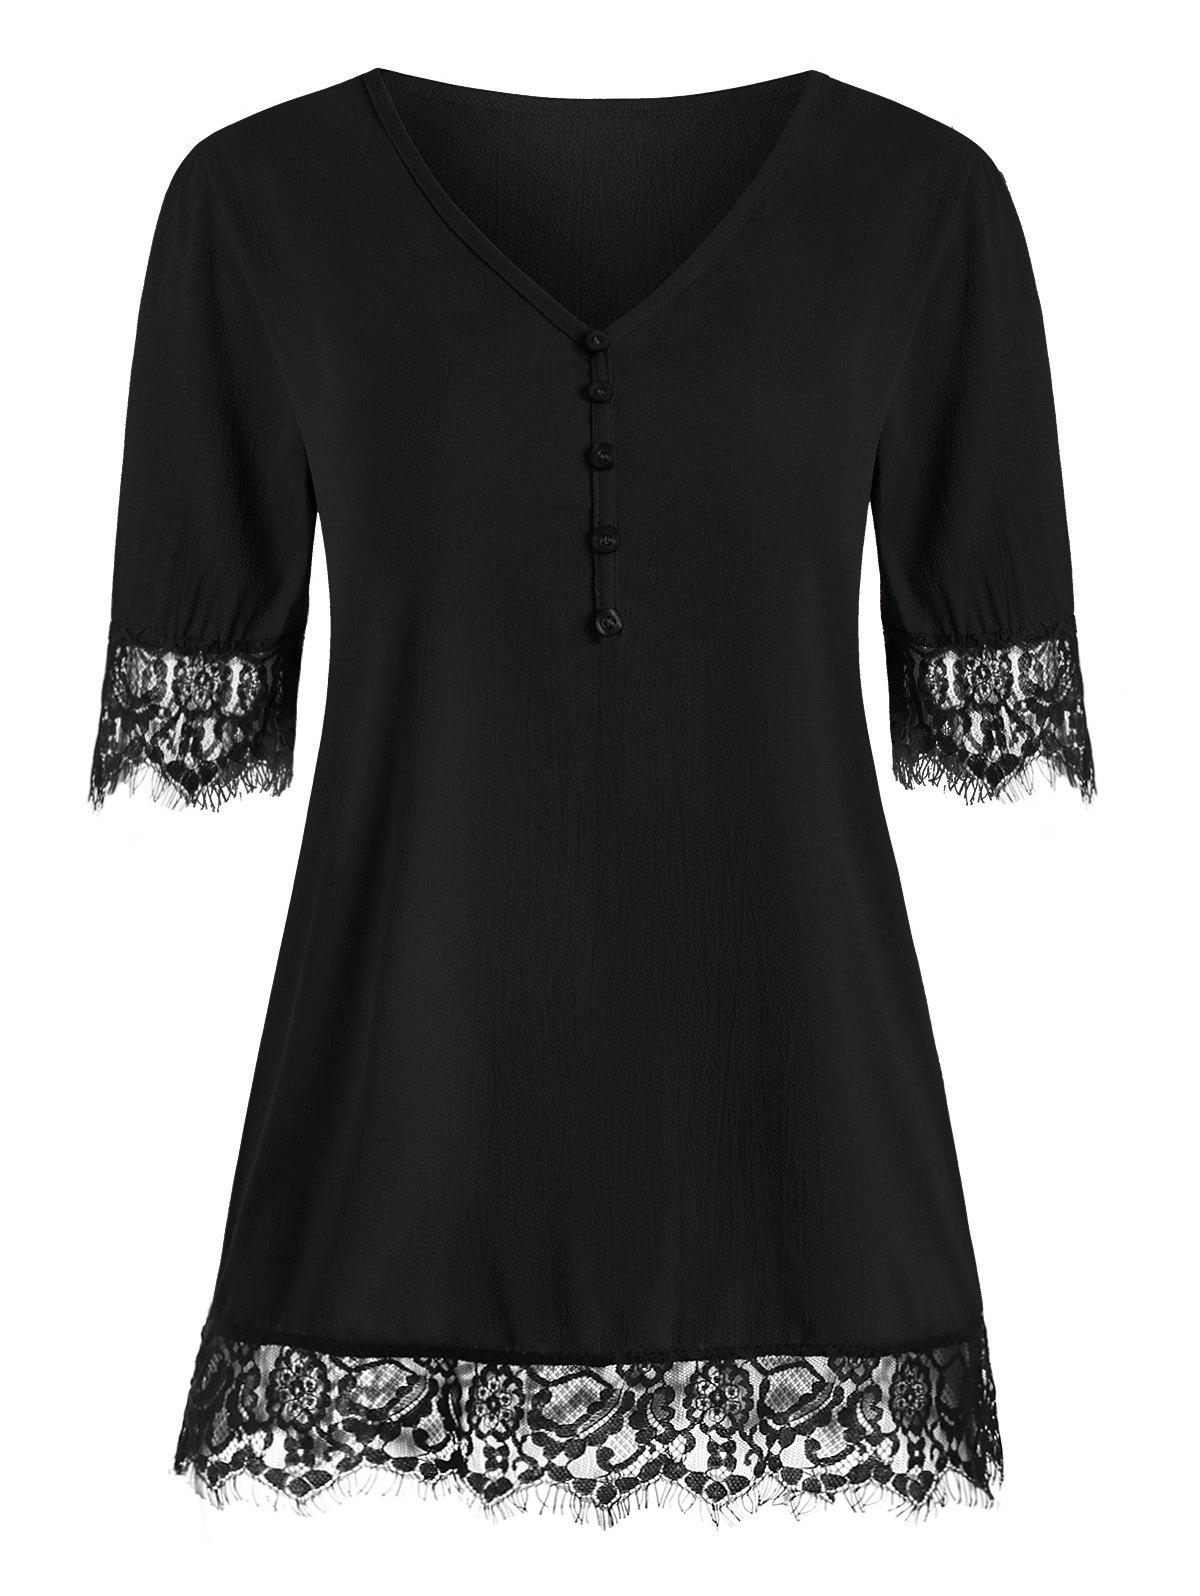 Discount Eyelash Lace Panel Buttons Short Sleeves Blouse